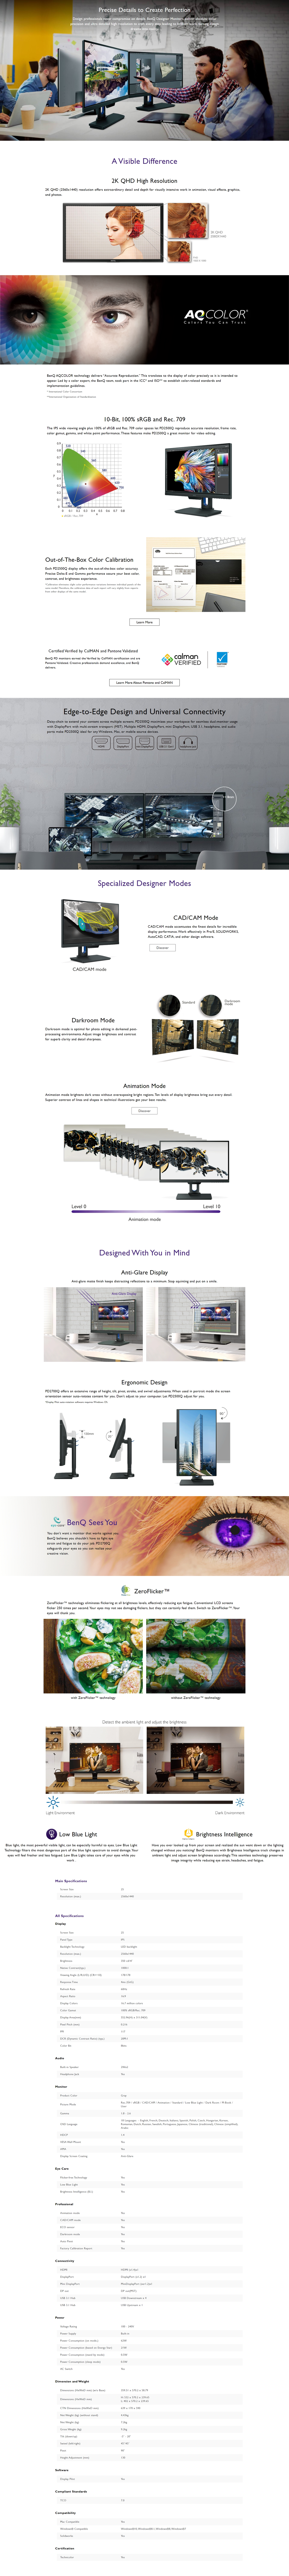 """A large marketing image providing additional information about the product BenQ PD2500Q 25"""" WQHD 4MS LED Graphics Design IPS LED Monitor - Additional alt info not provided"""